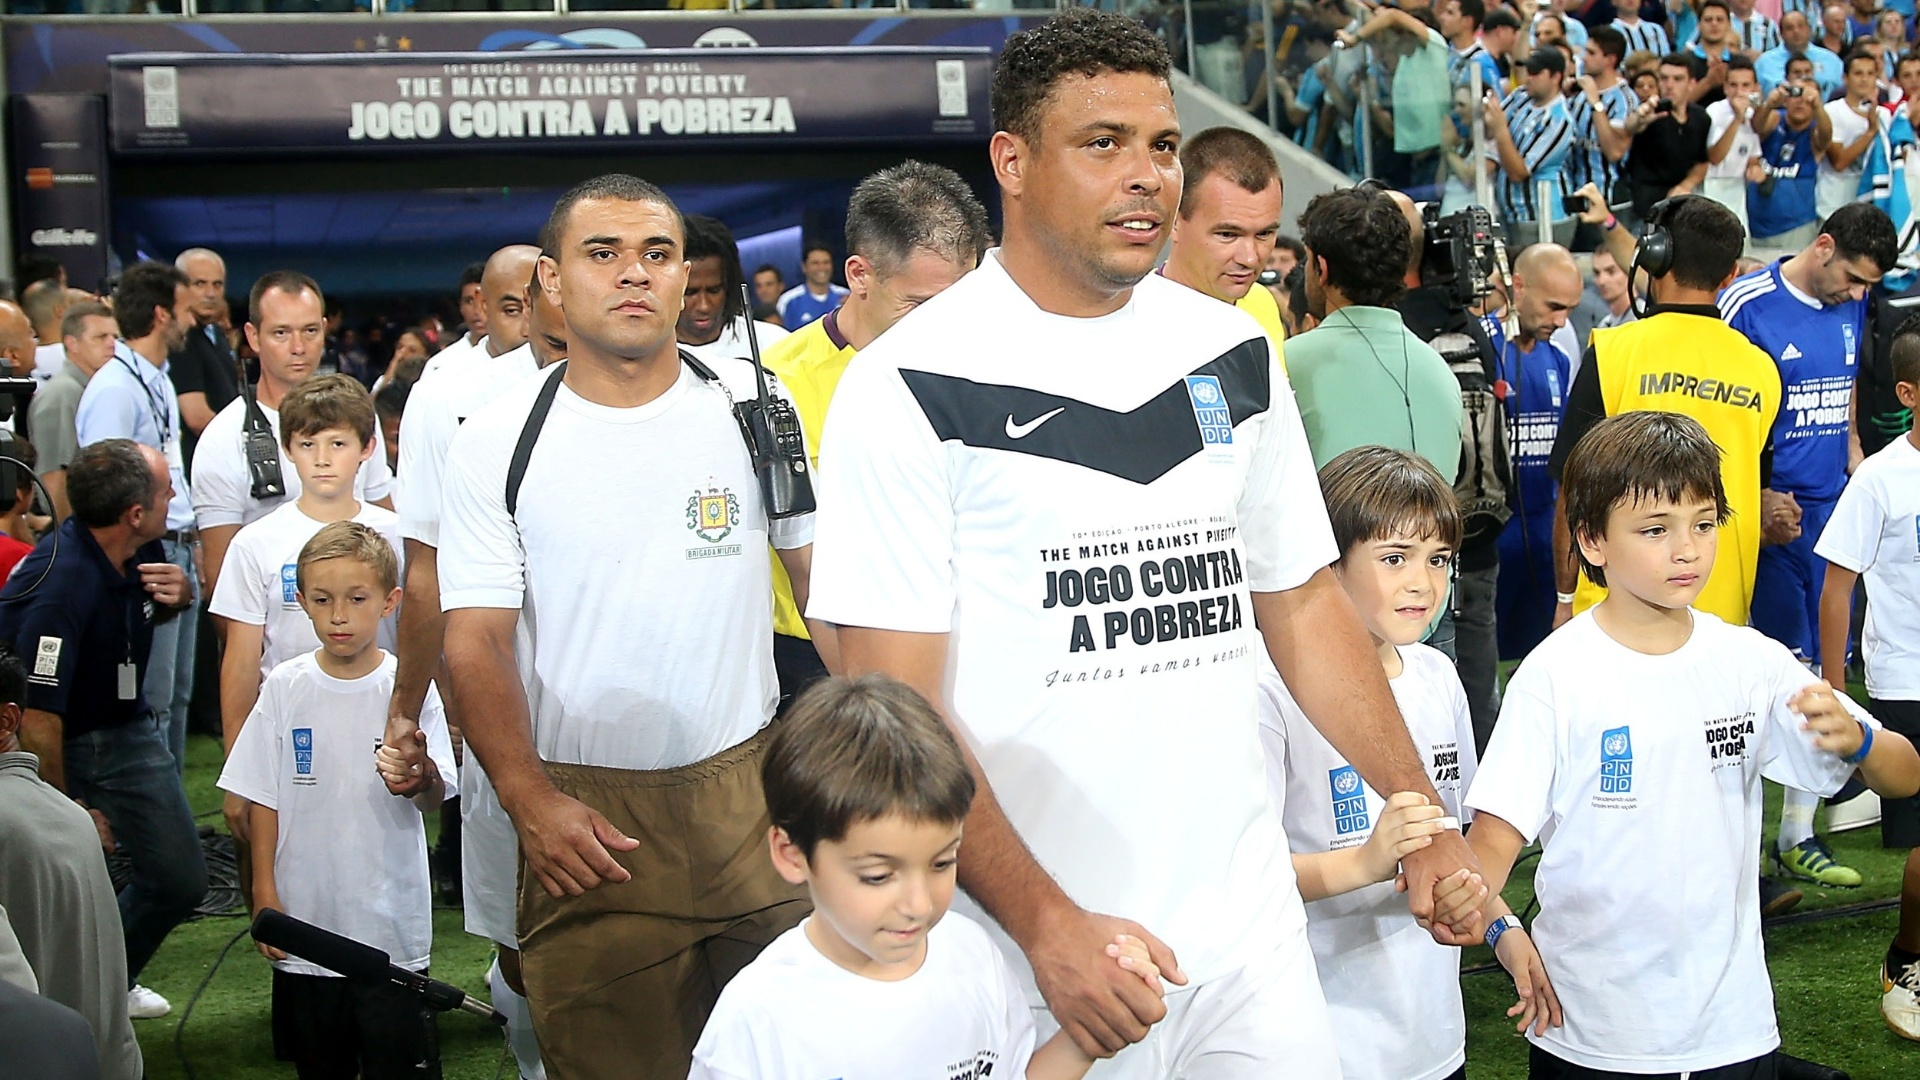 19.dez.2012 - Ronaldo entra em campo para o Jogo contra a Pobreza, na Arena do Grmio